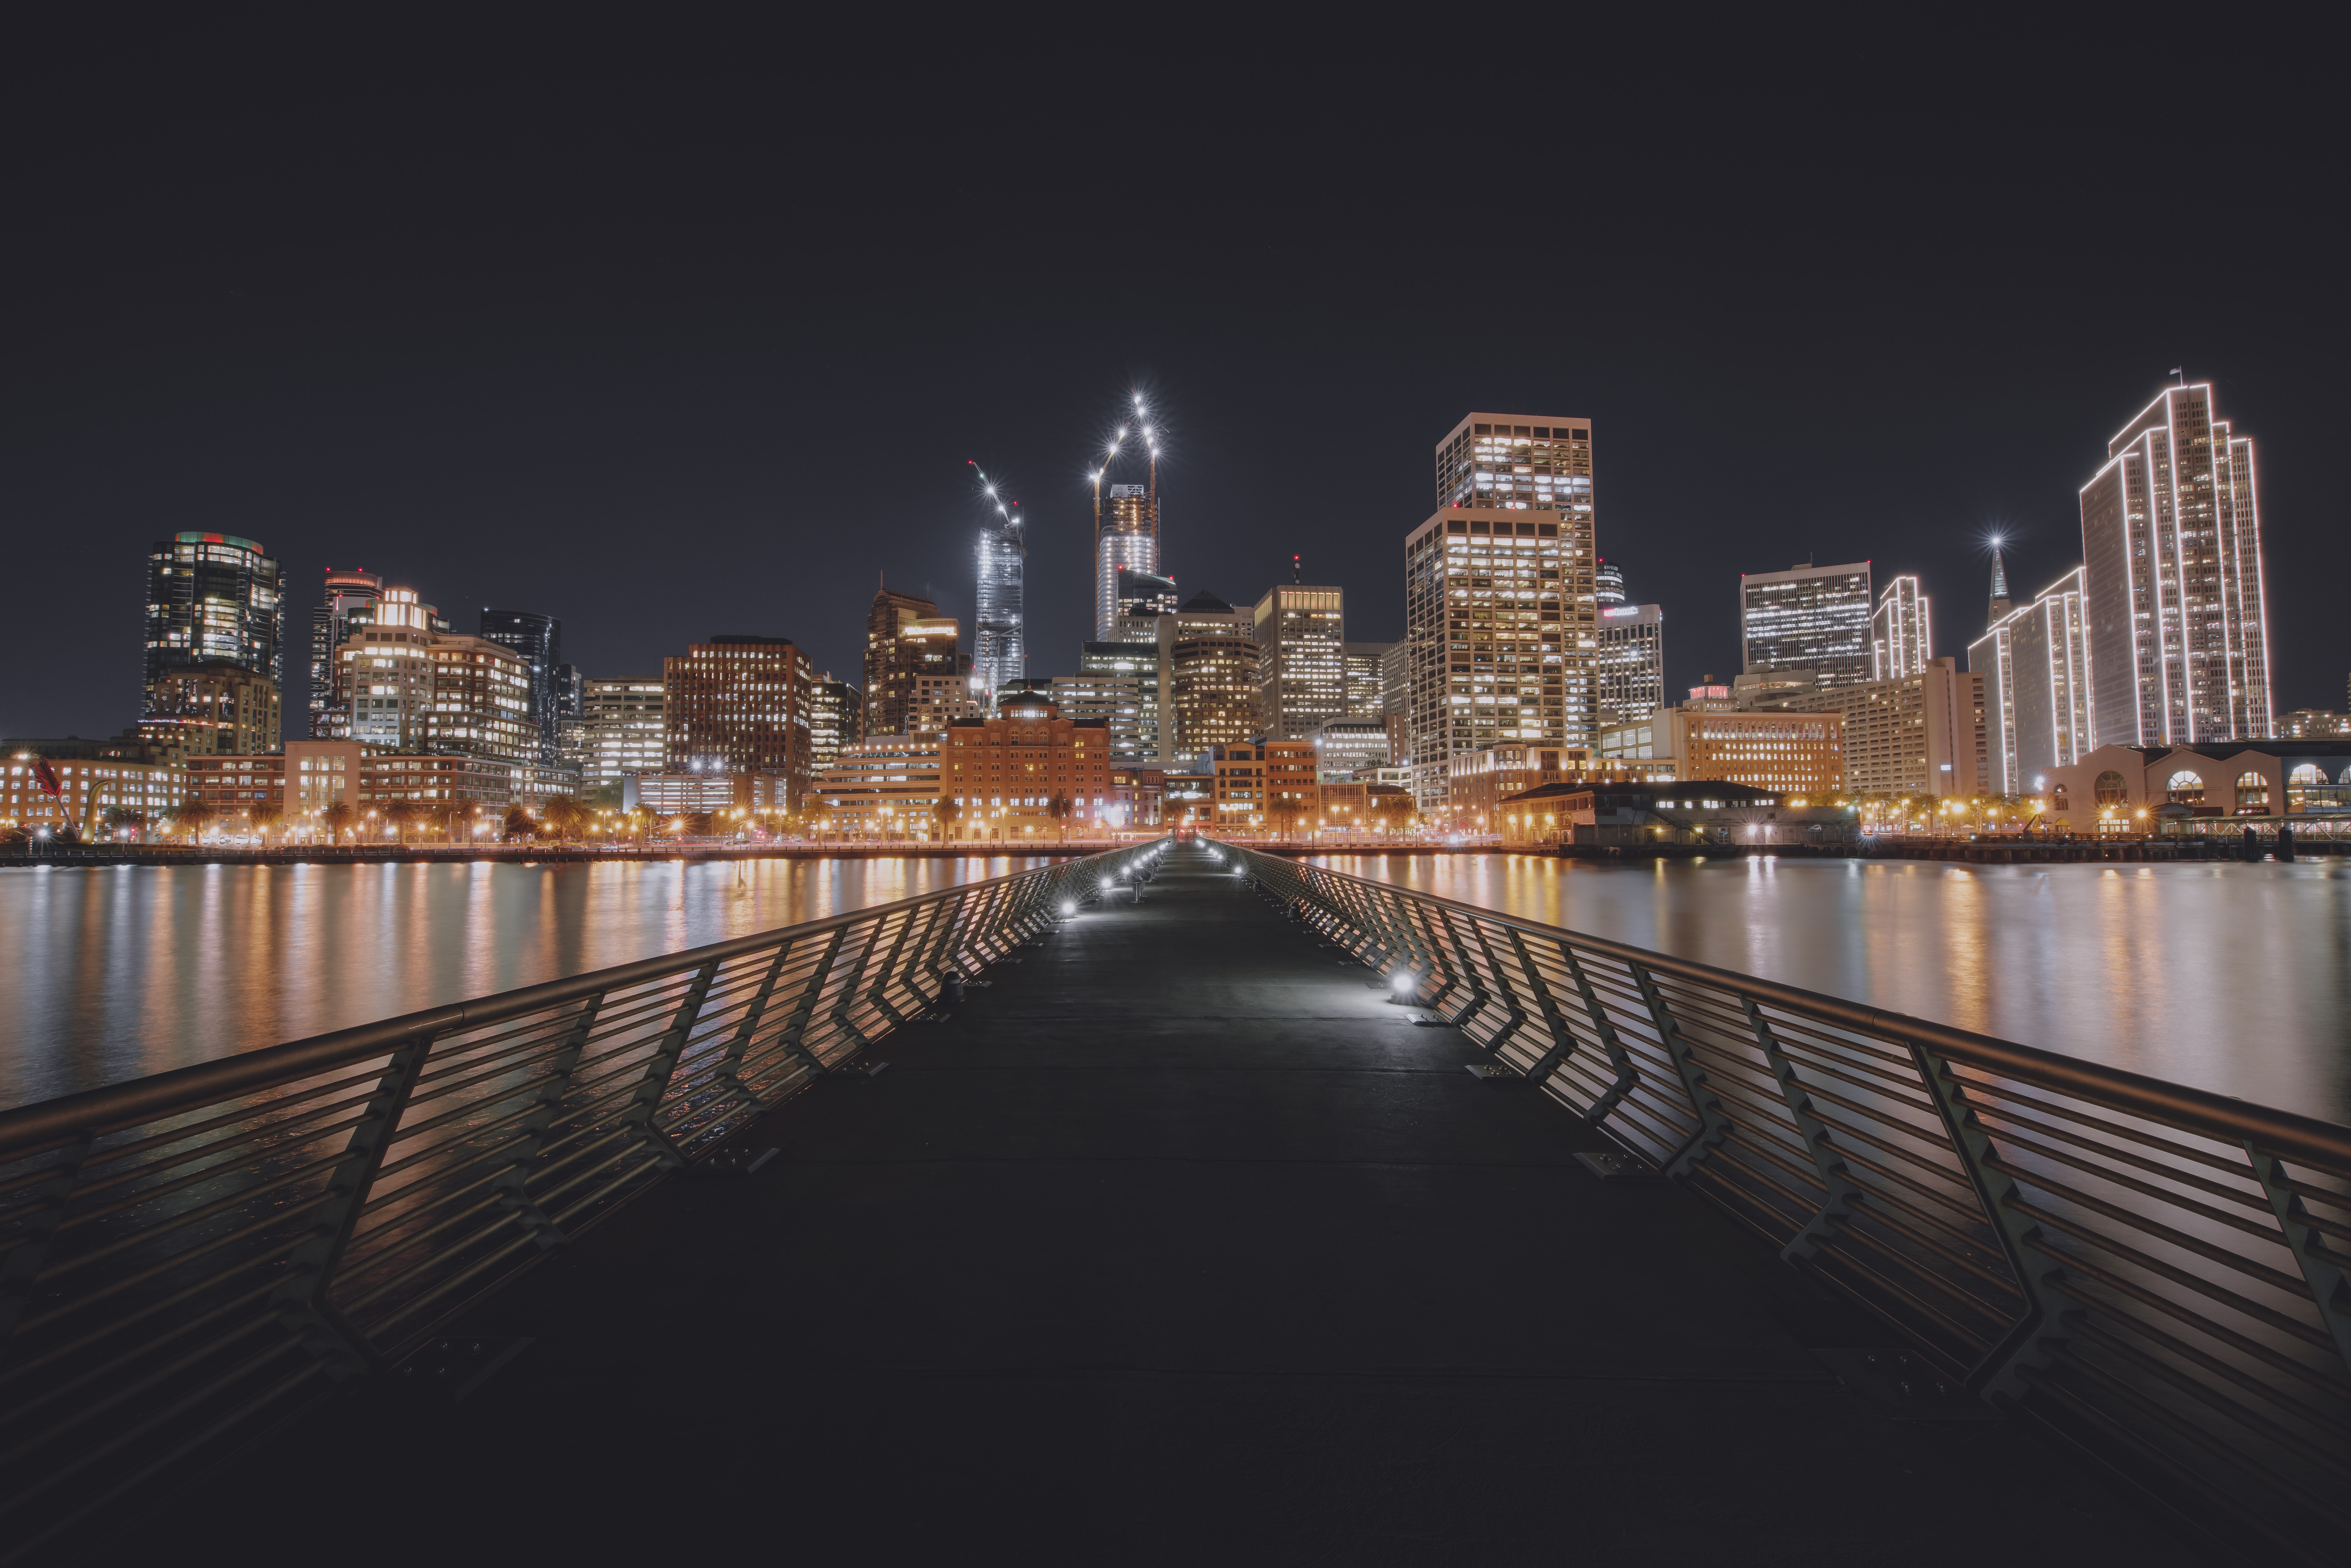 A look down Pier 14 with cityscape lighting reflections in the surrounding water